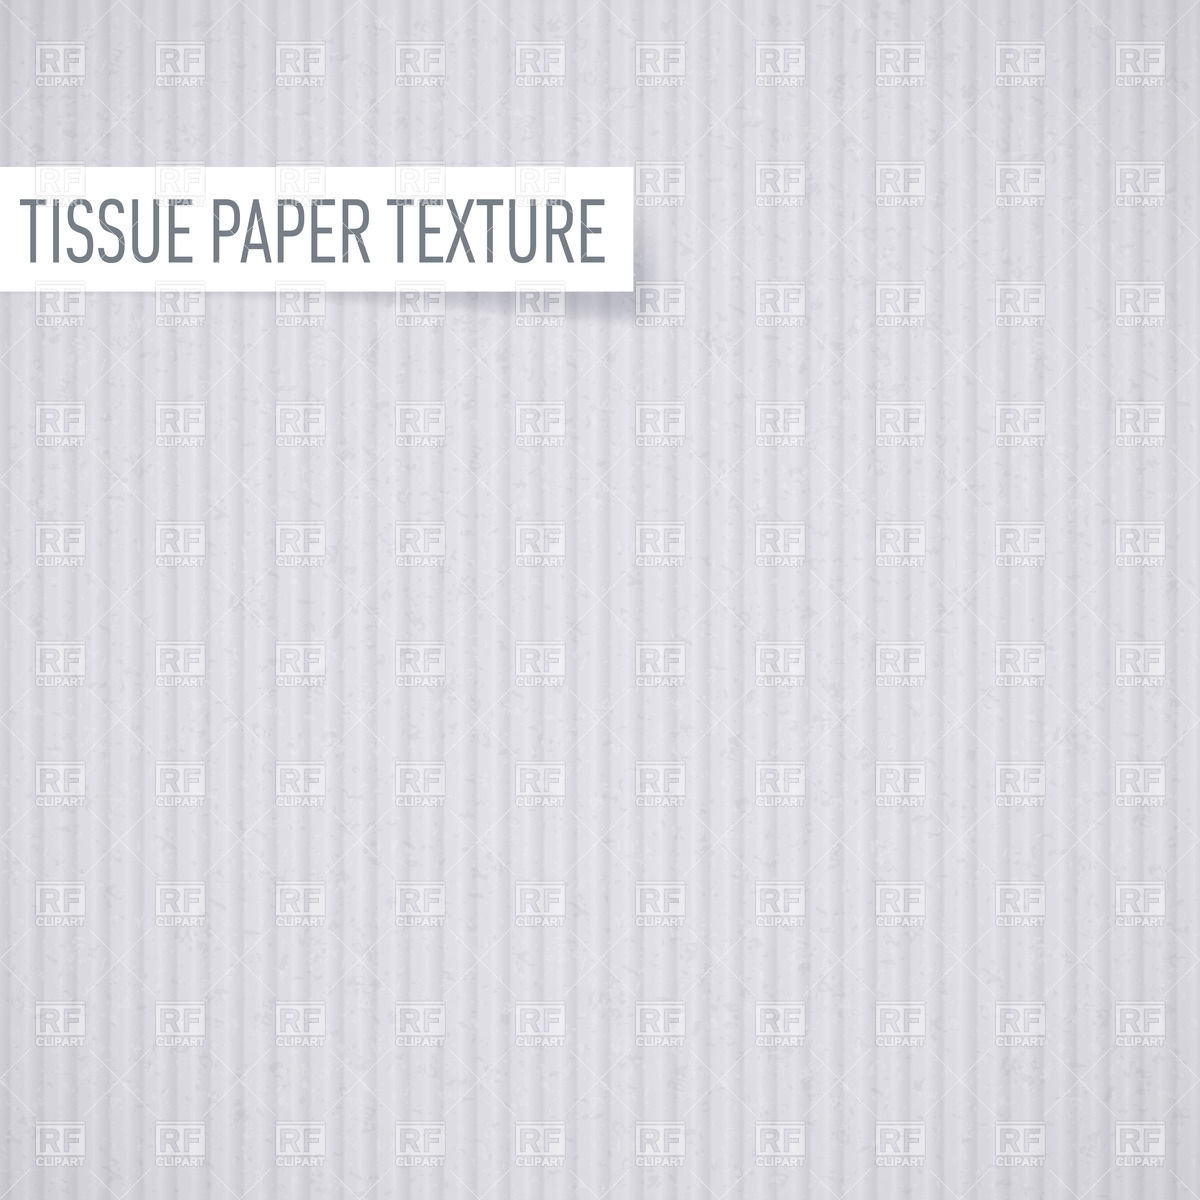 Realistic tissue paper texture Vector Image #35225.